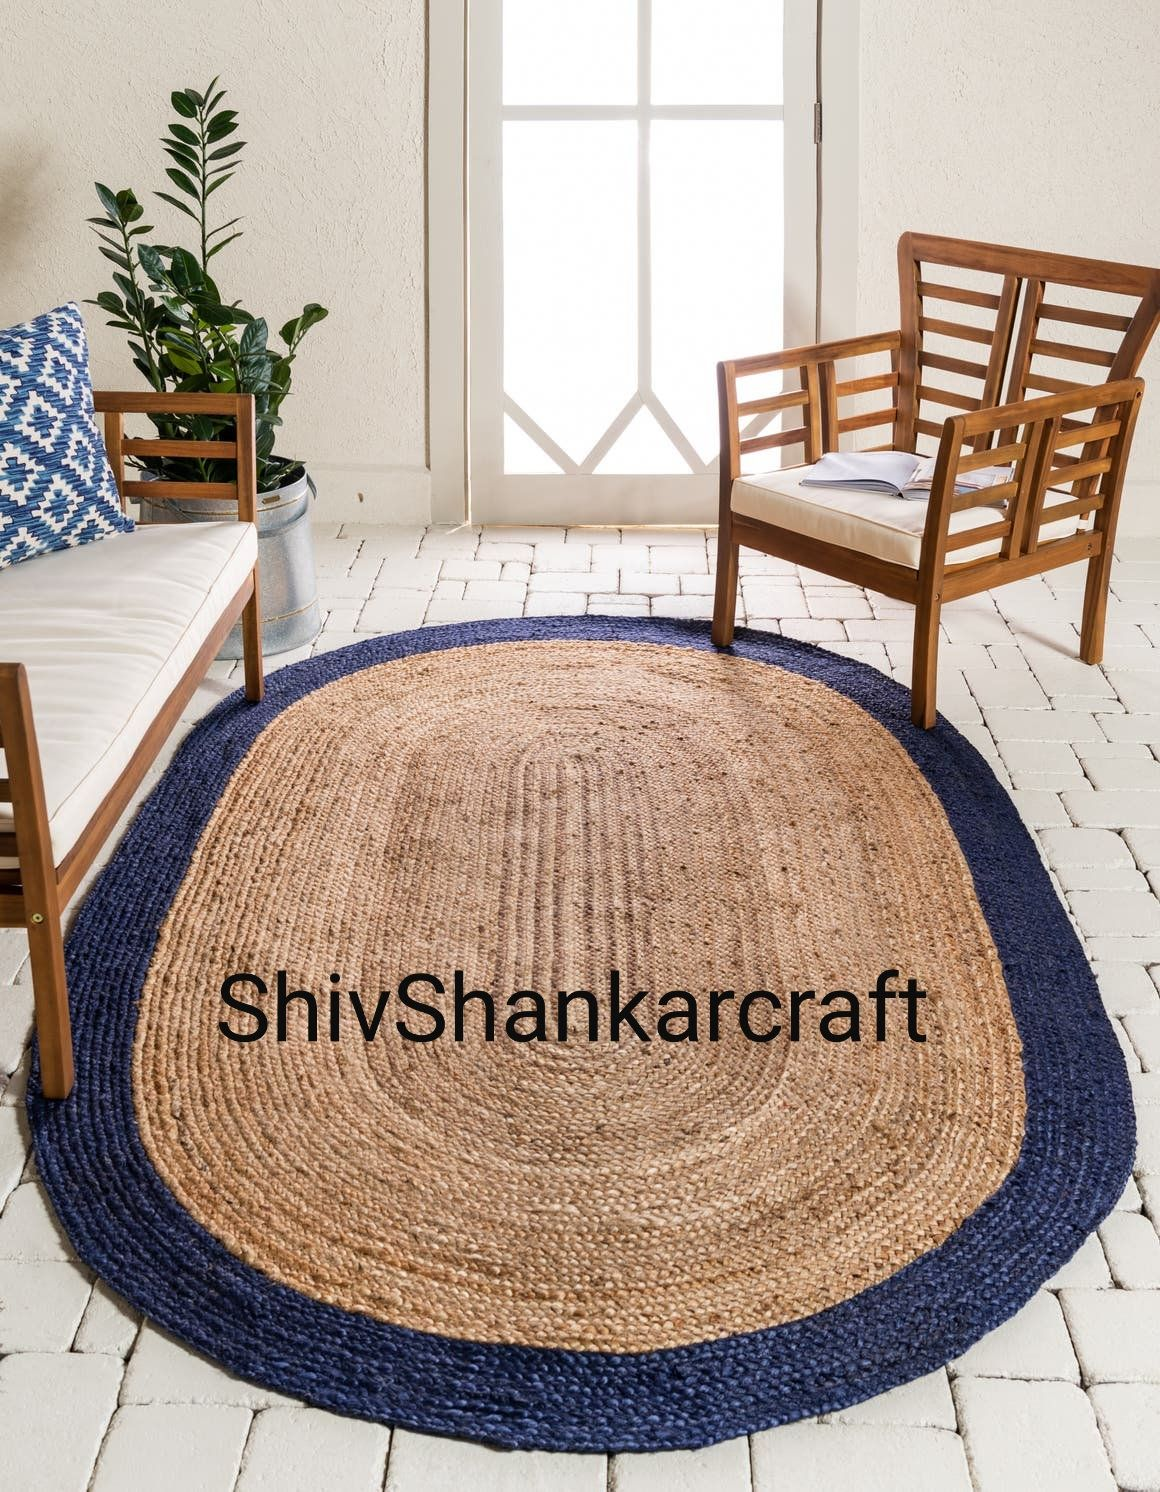 Indian Braided Jute Rug Rag Hand Woven Natural Jute Area Rugs Etsy In 2020 Natural Jute Rug Jute Area Rugs Rugs On Carpet